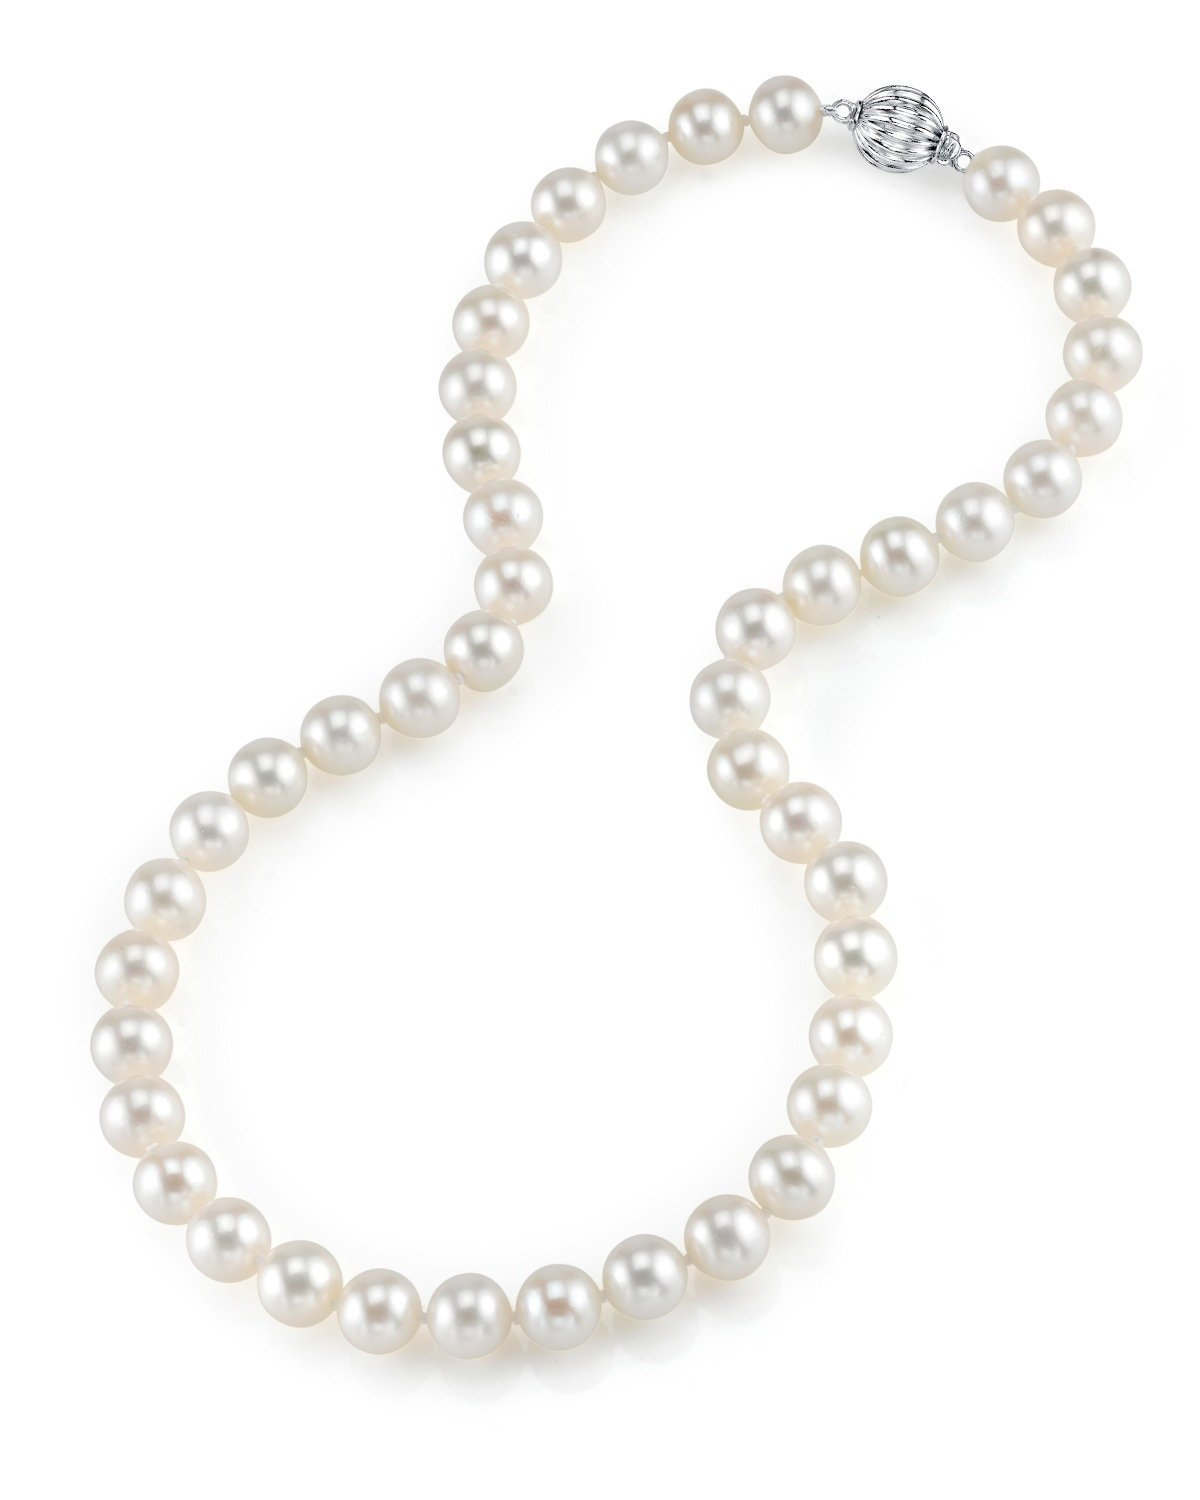 THE PEARL SOURCE 6.5-7mm AAA Quality Round White Freshwater Cultured Pearl Necklace for Women in 18'' Princess Length